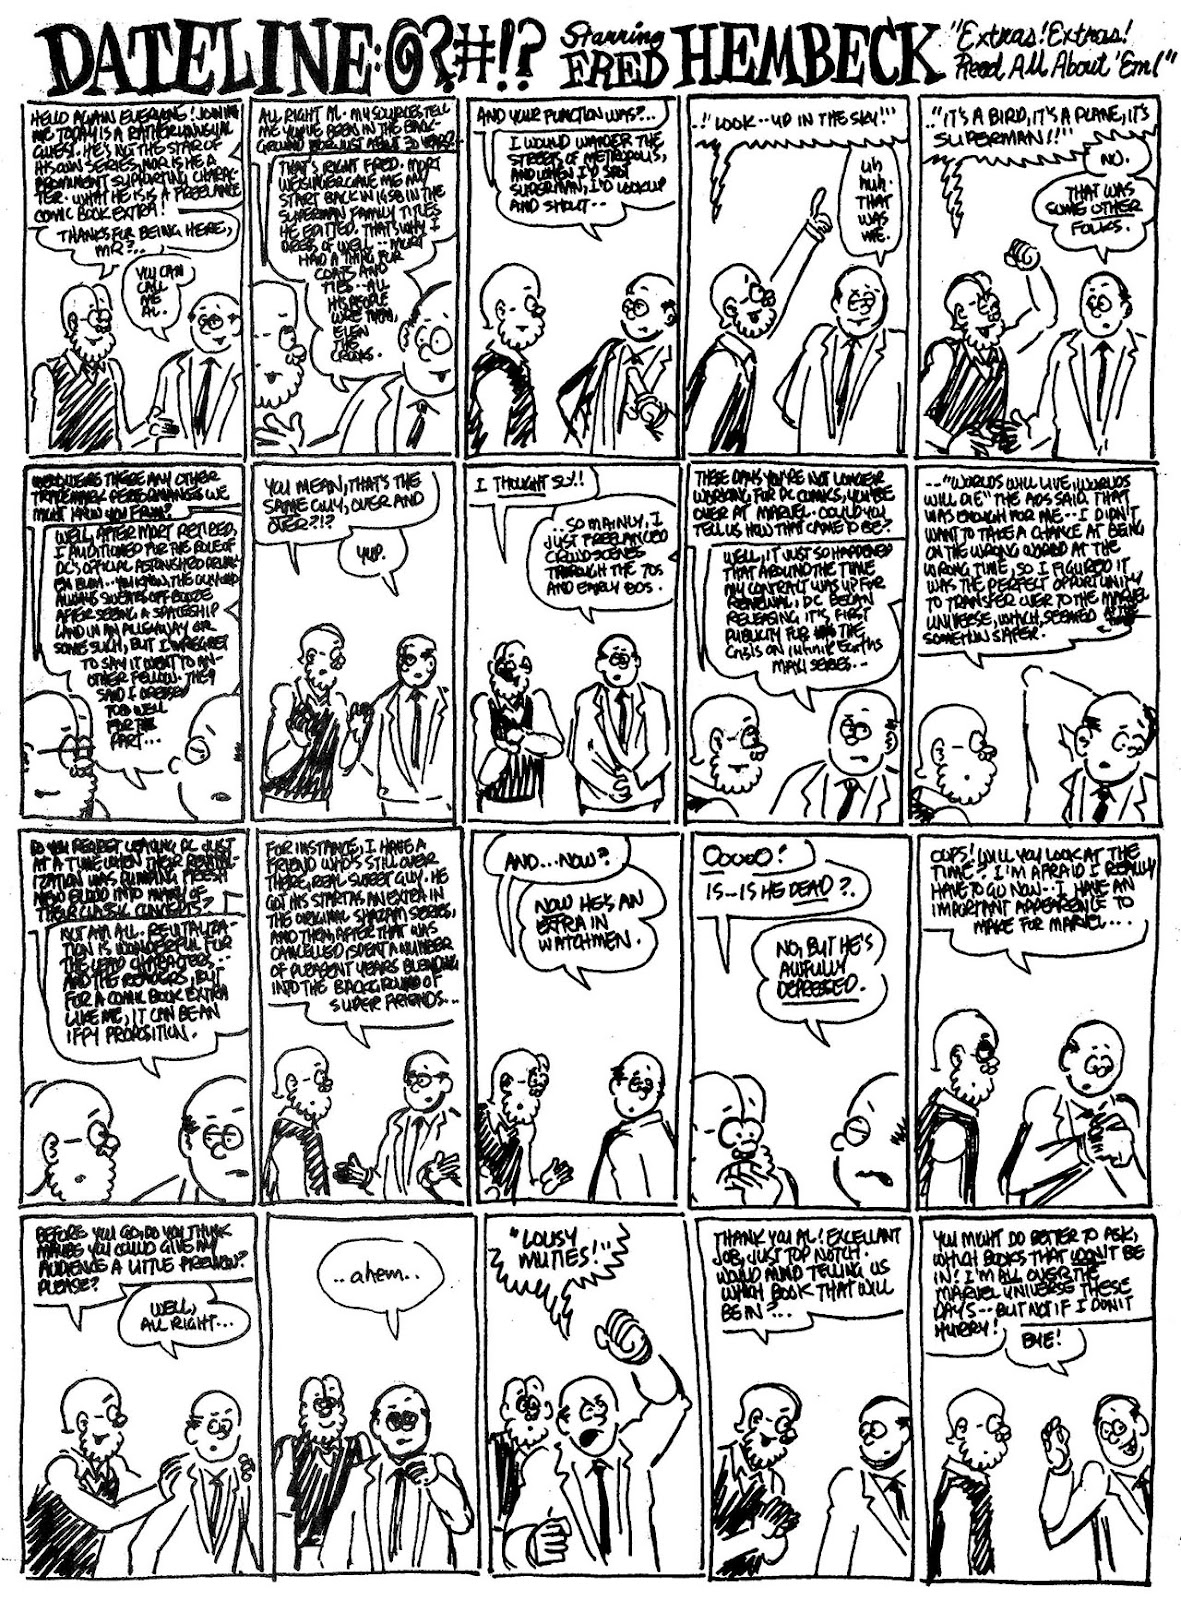 Read online The Nearly Complete Essential Hembeck Archives Omnibus comic -  Issue # TPB (Part 4) - 79